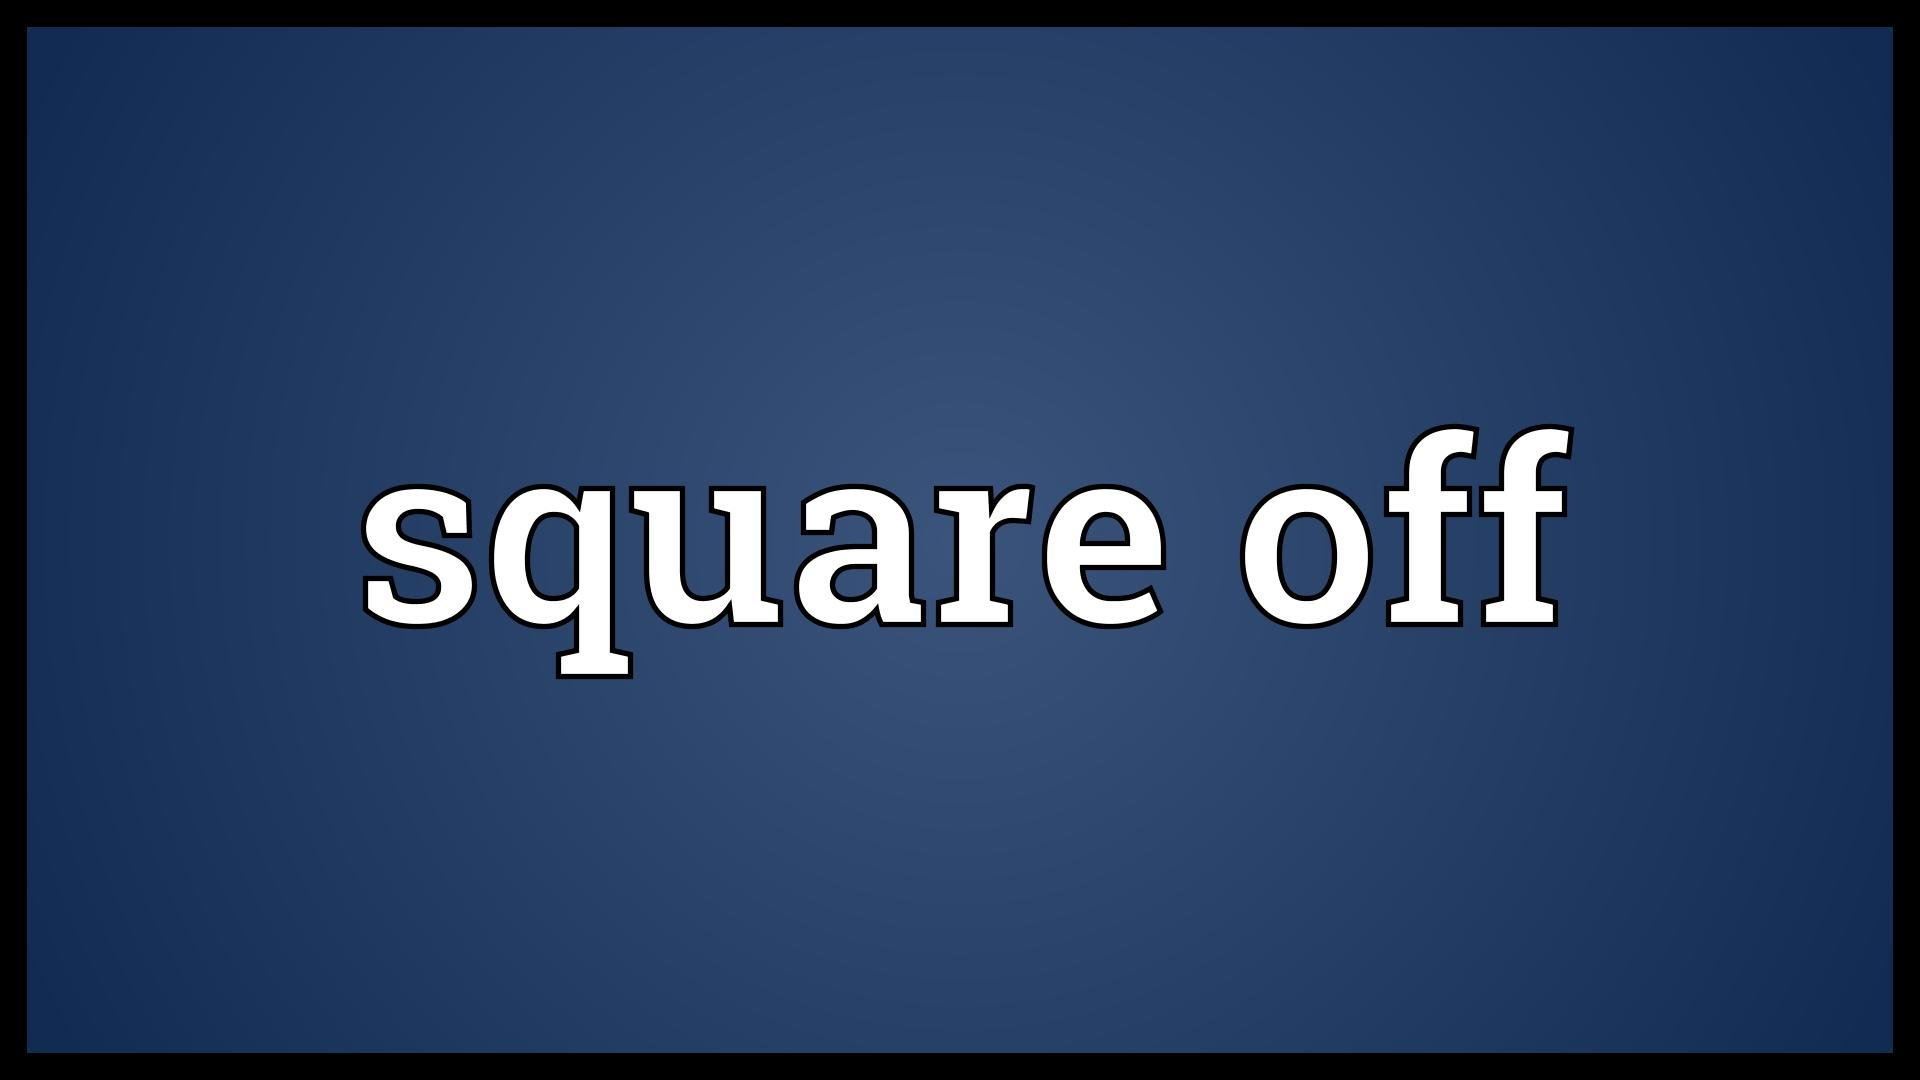 What is the meaning of square off in intraday?